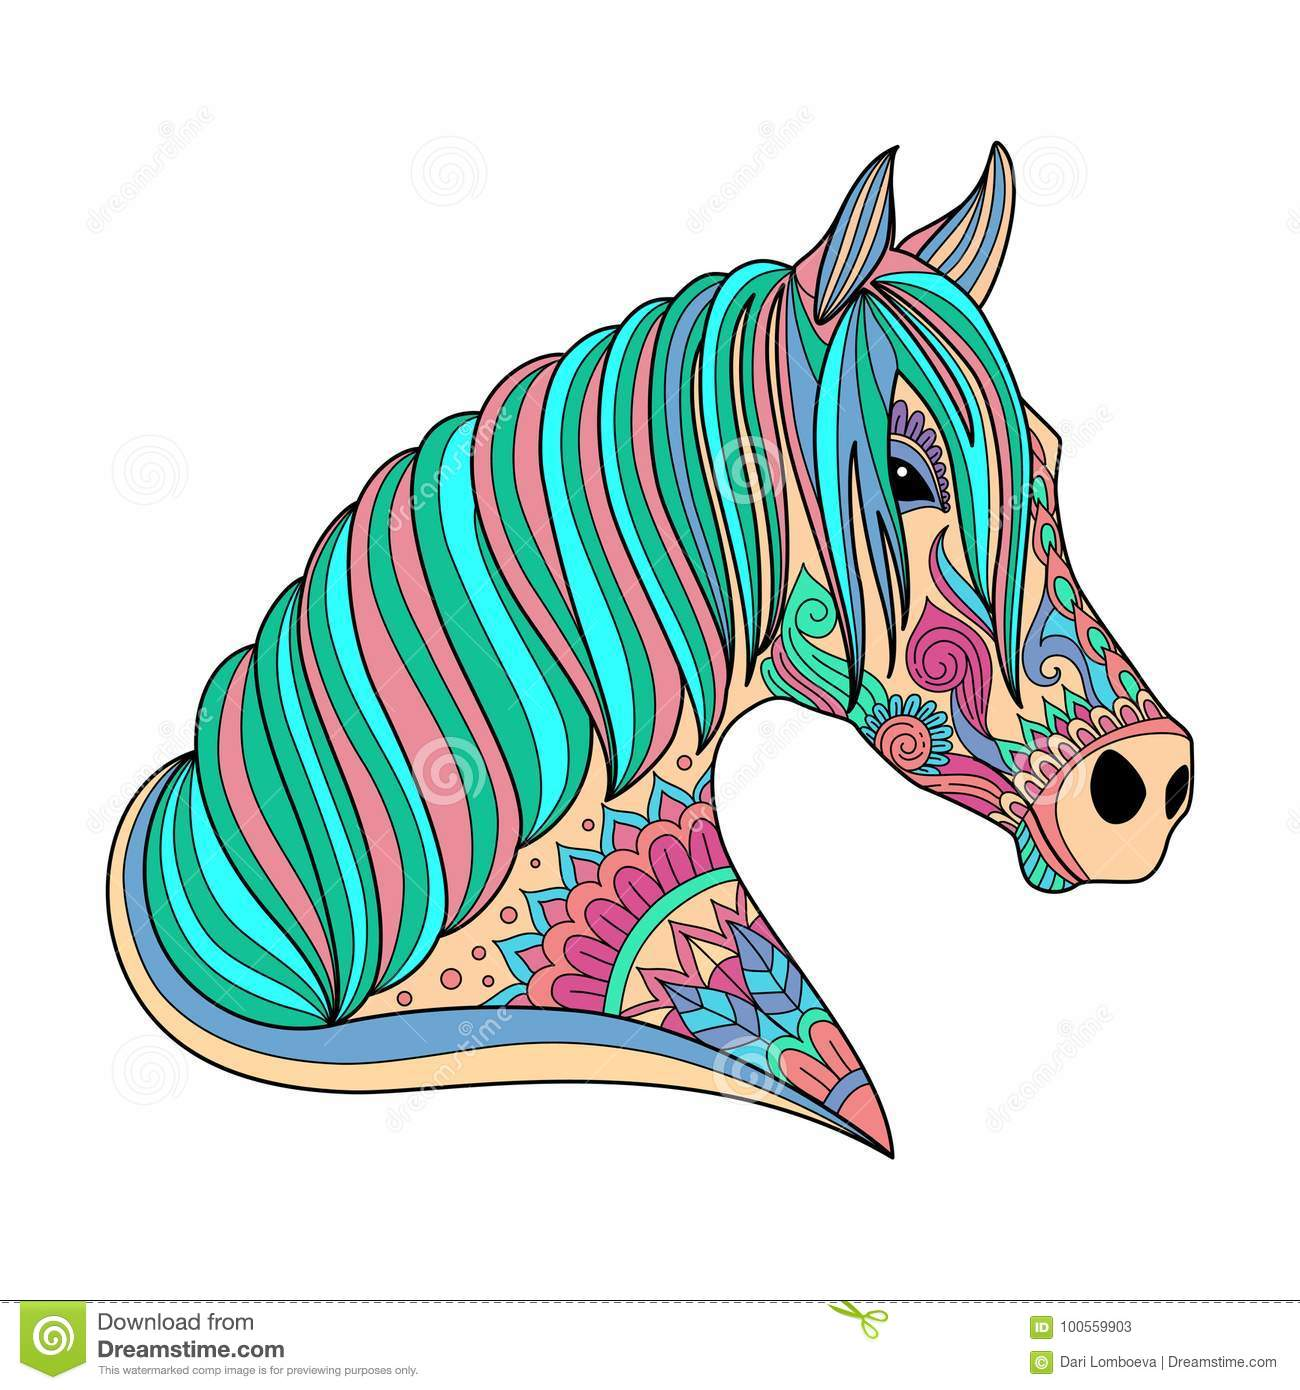 Download Stylized Drawing Horse Zentangle Style For Coloring Book Tattoo Shirt Design Logo